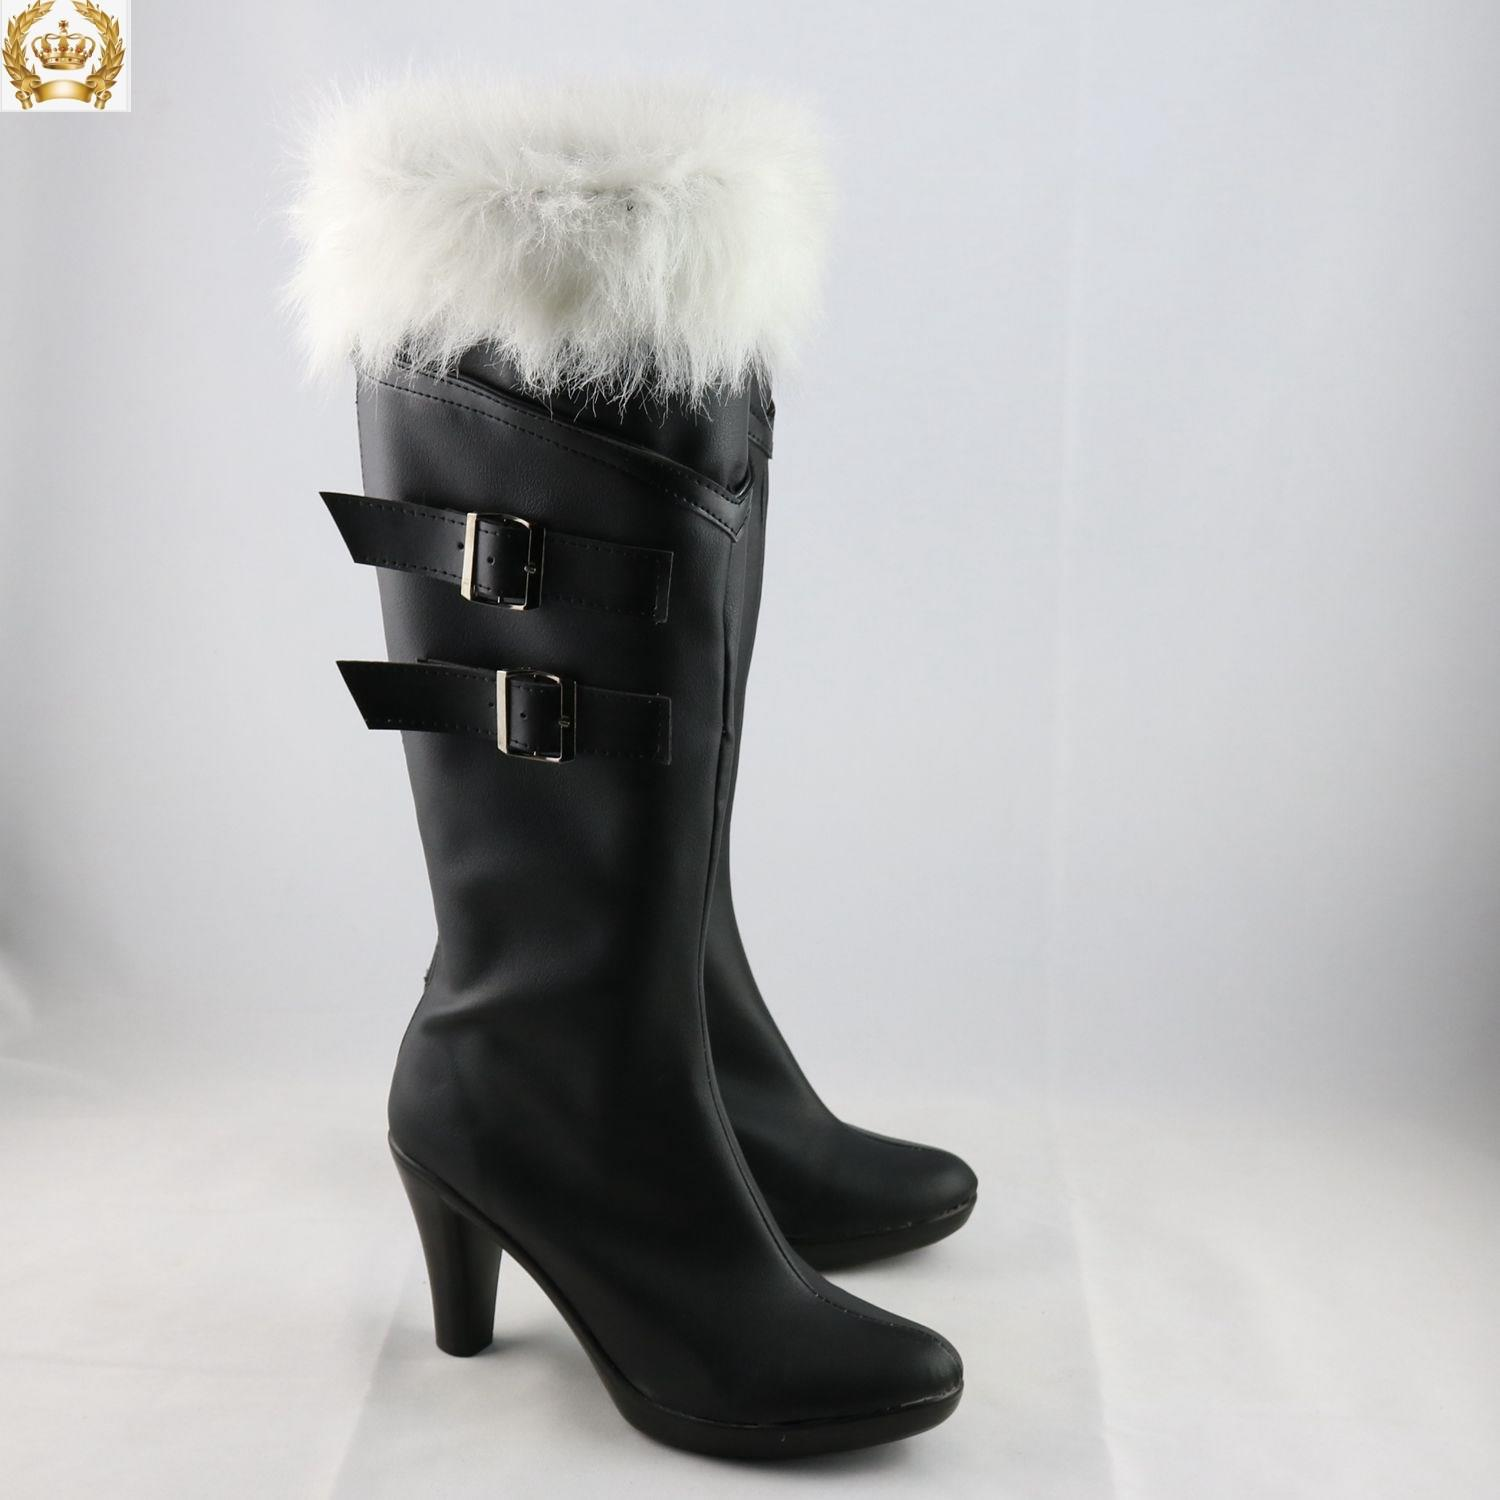 Tomorrow ark early snow Cosplay shoes